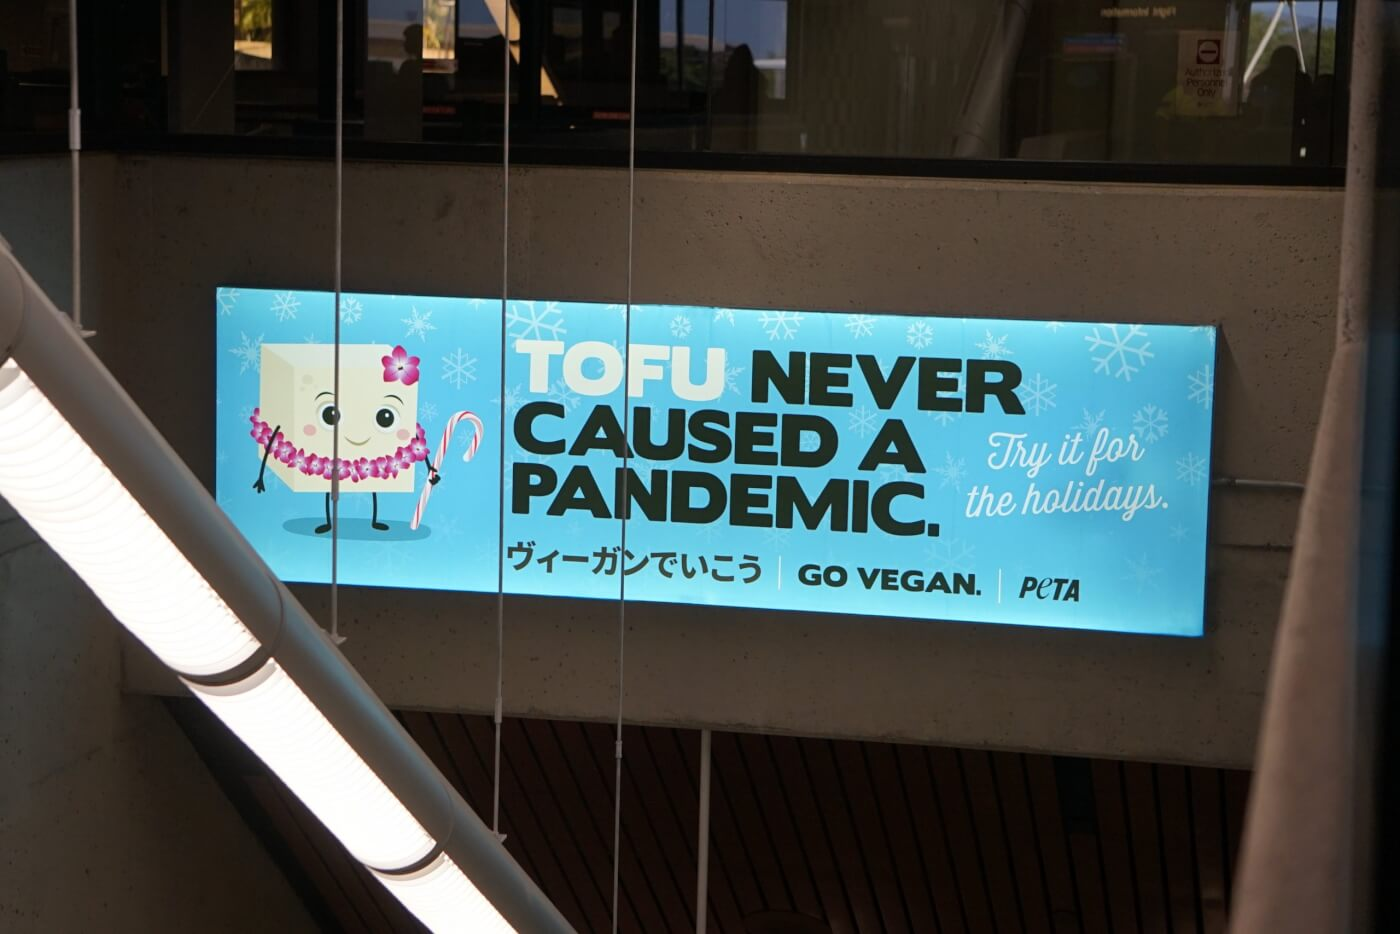 'Tofu Never Caused a Pandemic' at the Honolulu Airport